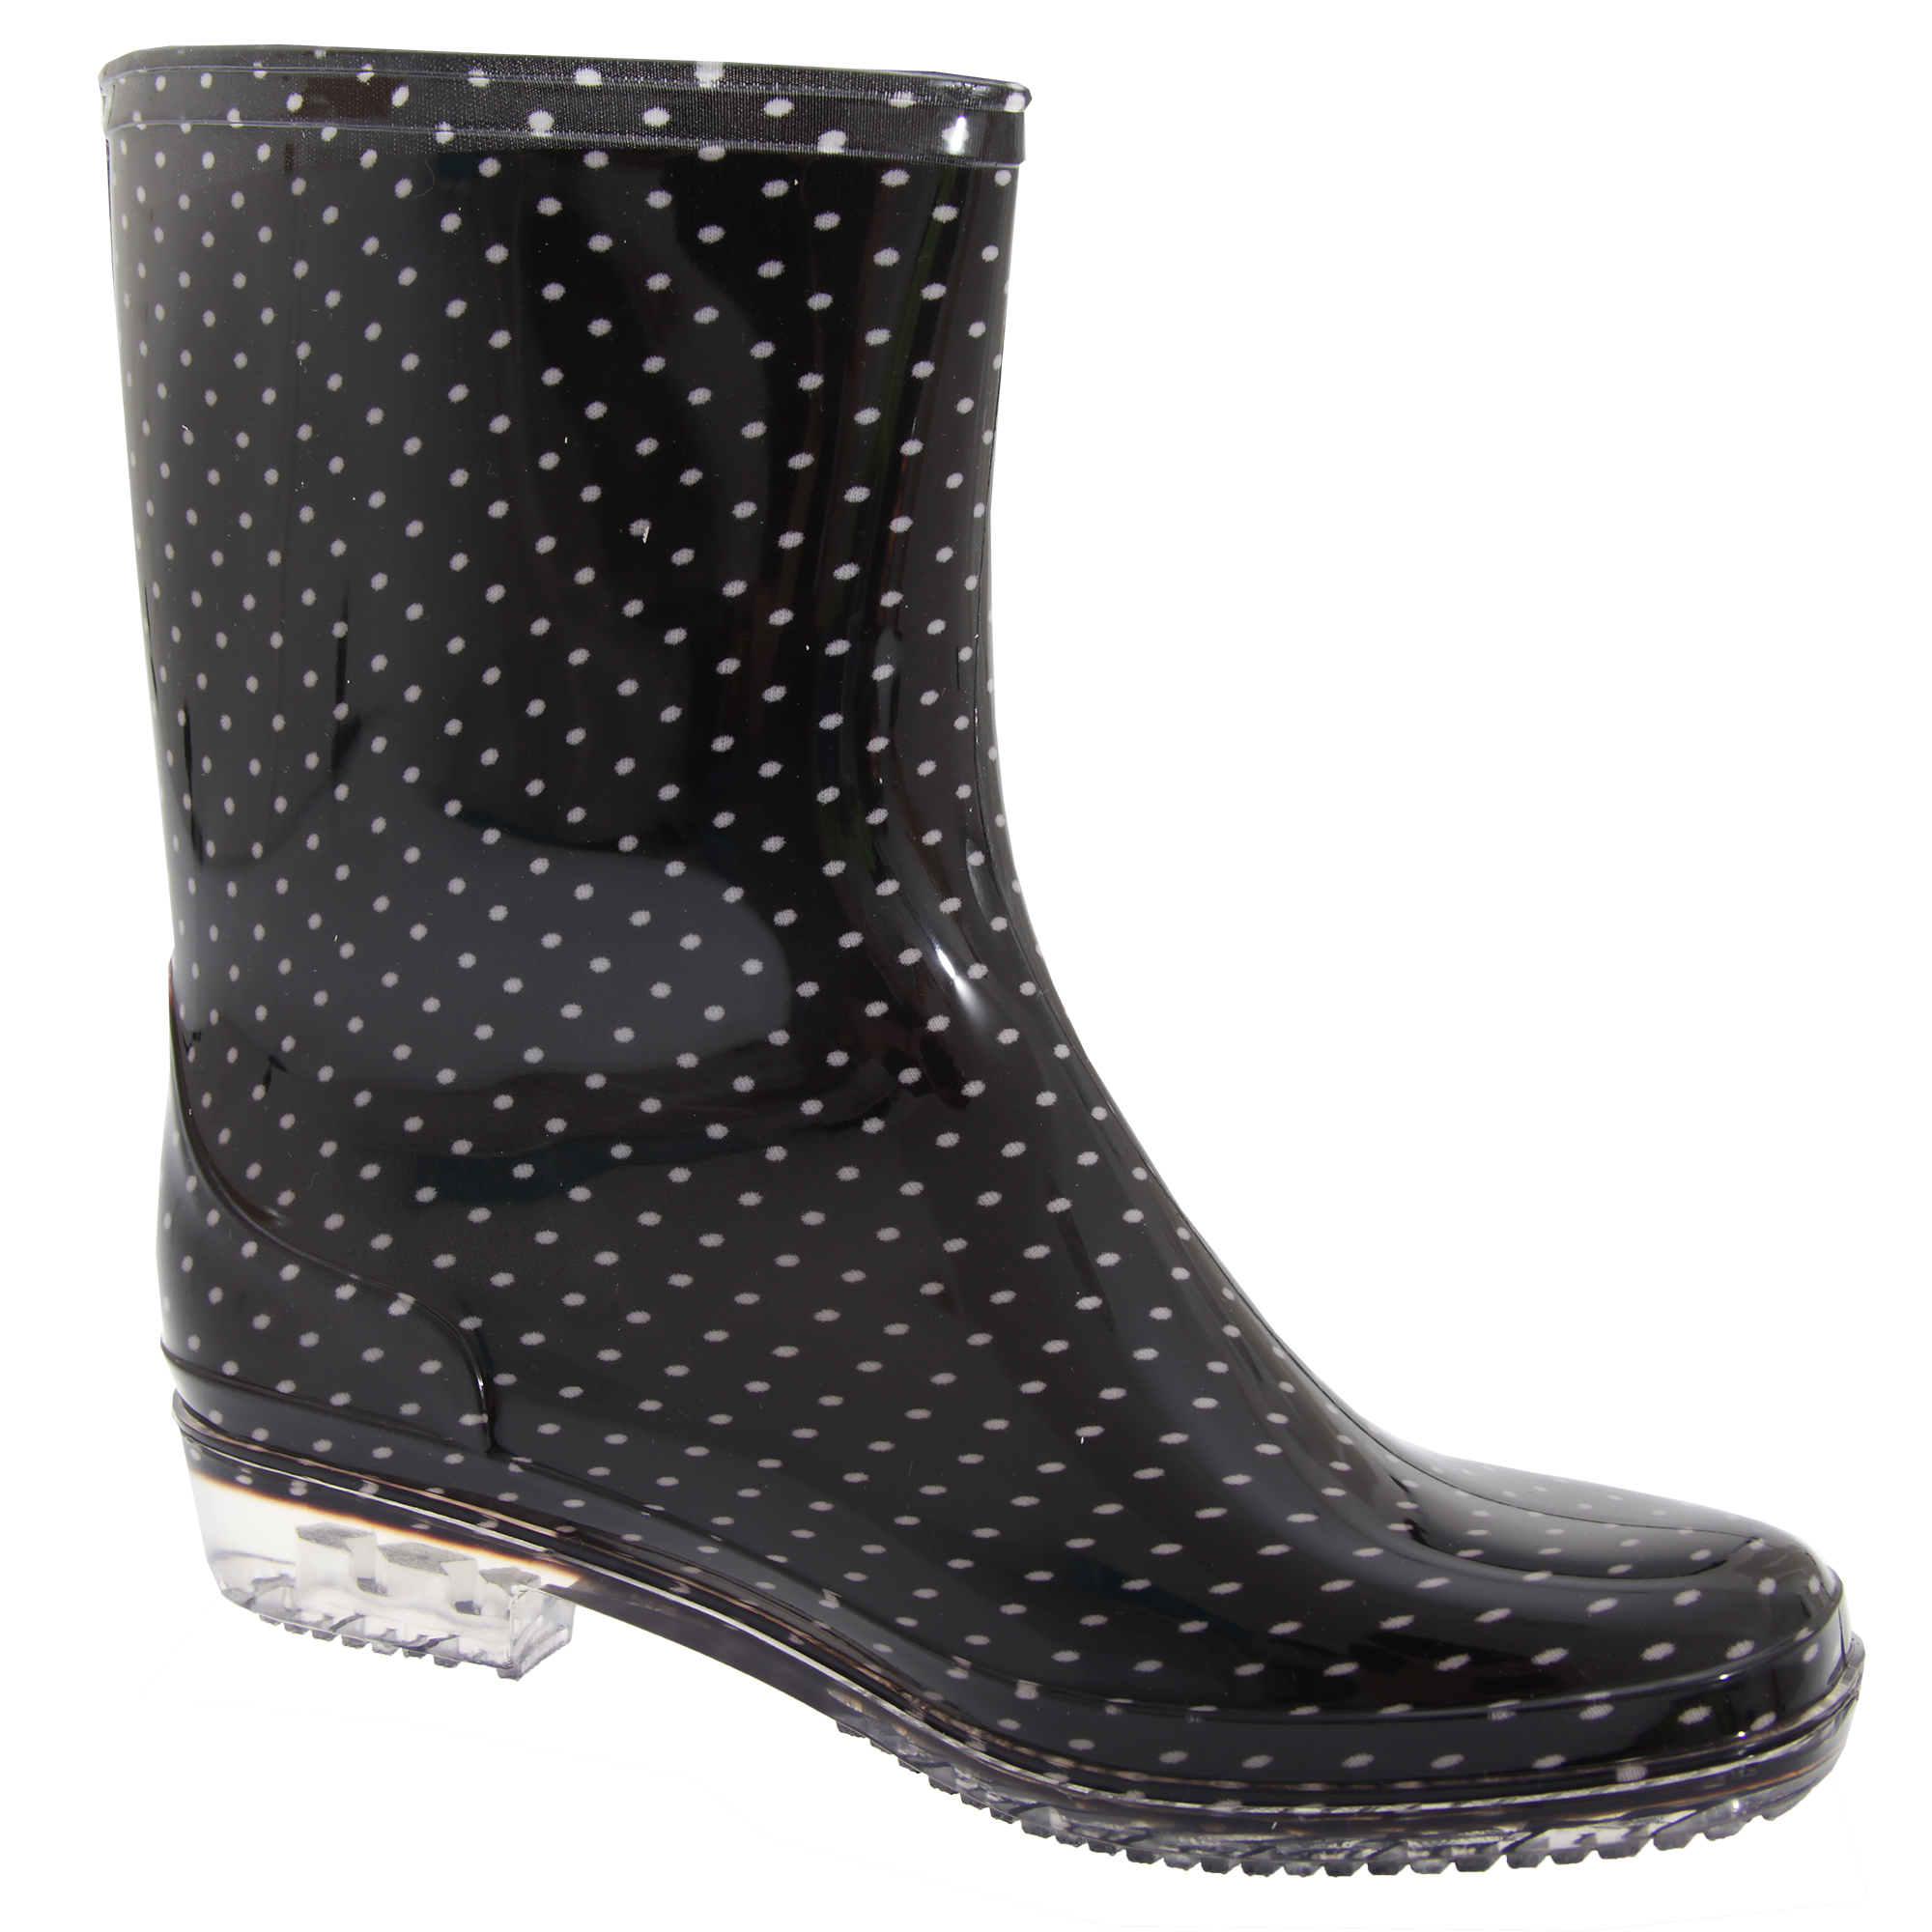 Womens-Ladies-Short-Monochrome-Polka-Dot-Print-PVC-Wellington-Boots-SH121